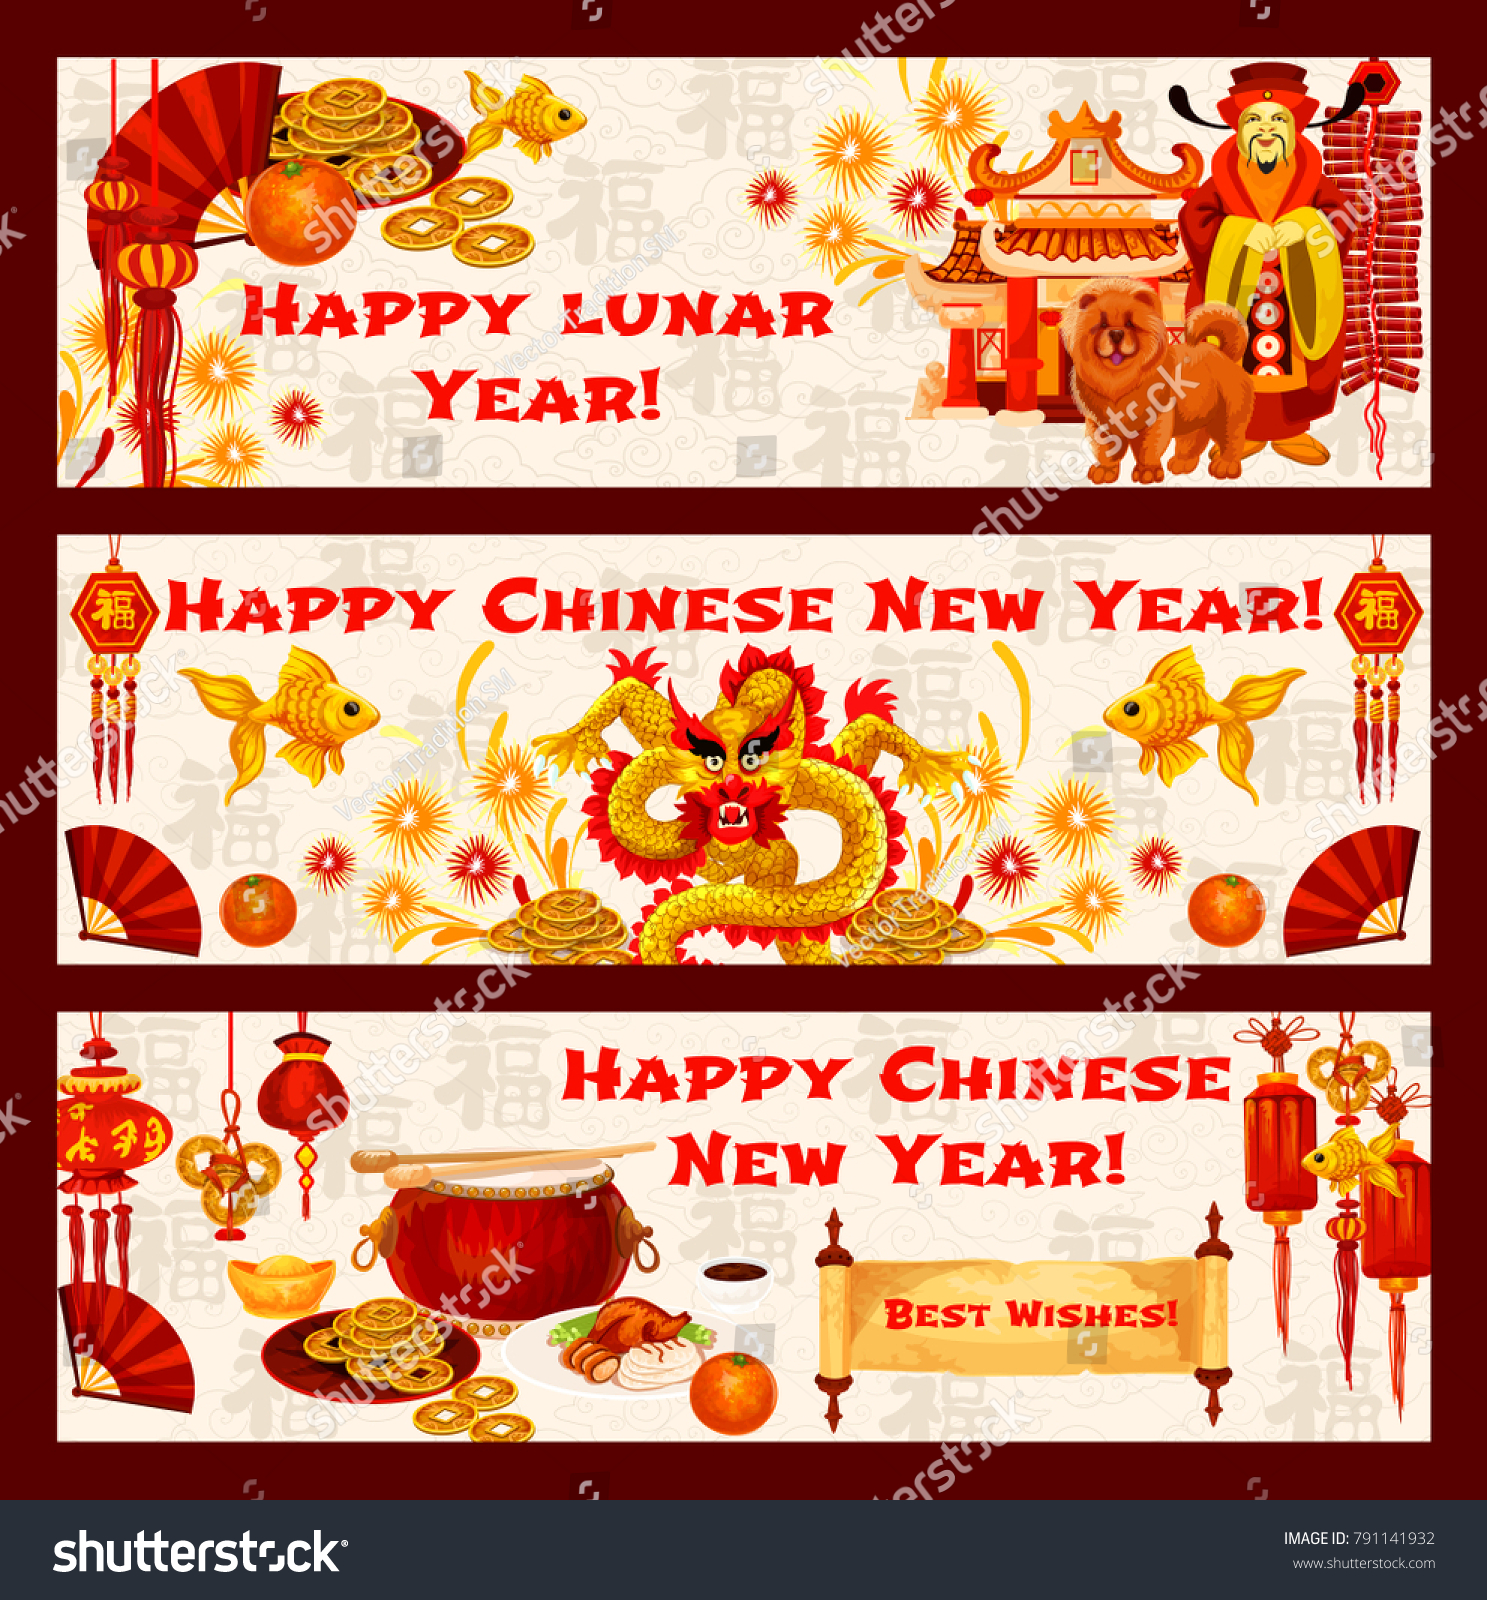 Happy Chinese New Year Greeting Cards Of For 2018 Yellow Dog Lunar